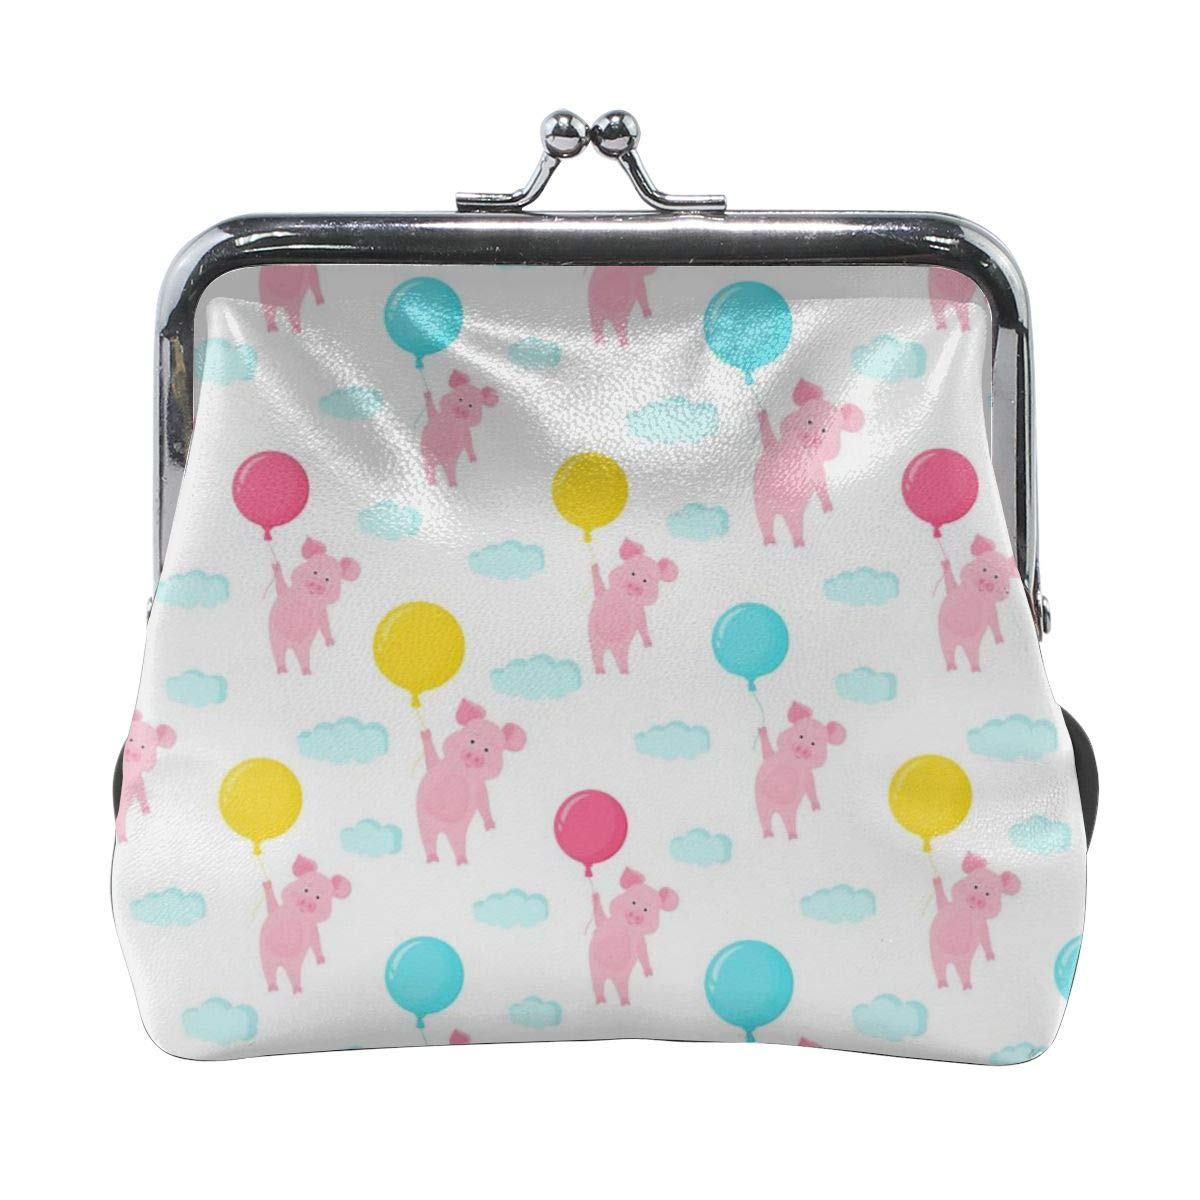 Cute Pig Flying In The Sky Holding The Balloon Cute Buckle Coin Purses Buckle Buckle Change Purse Wallets